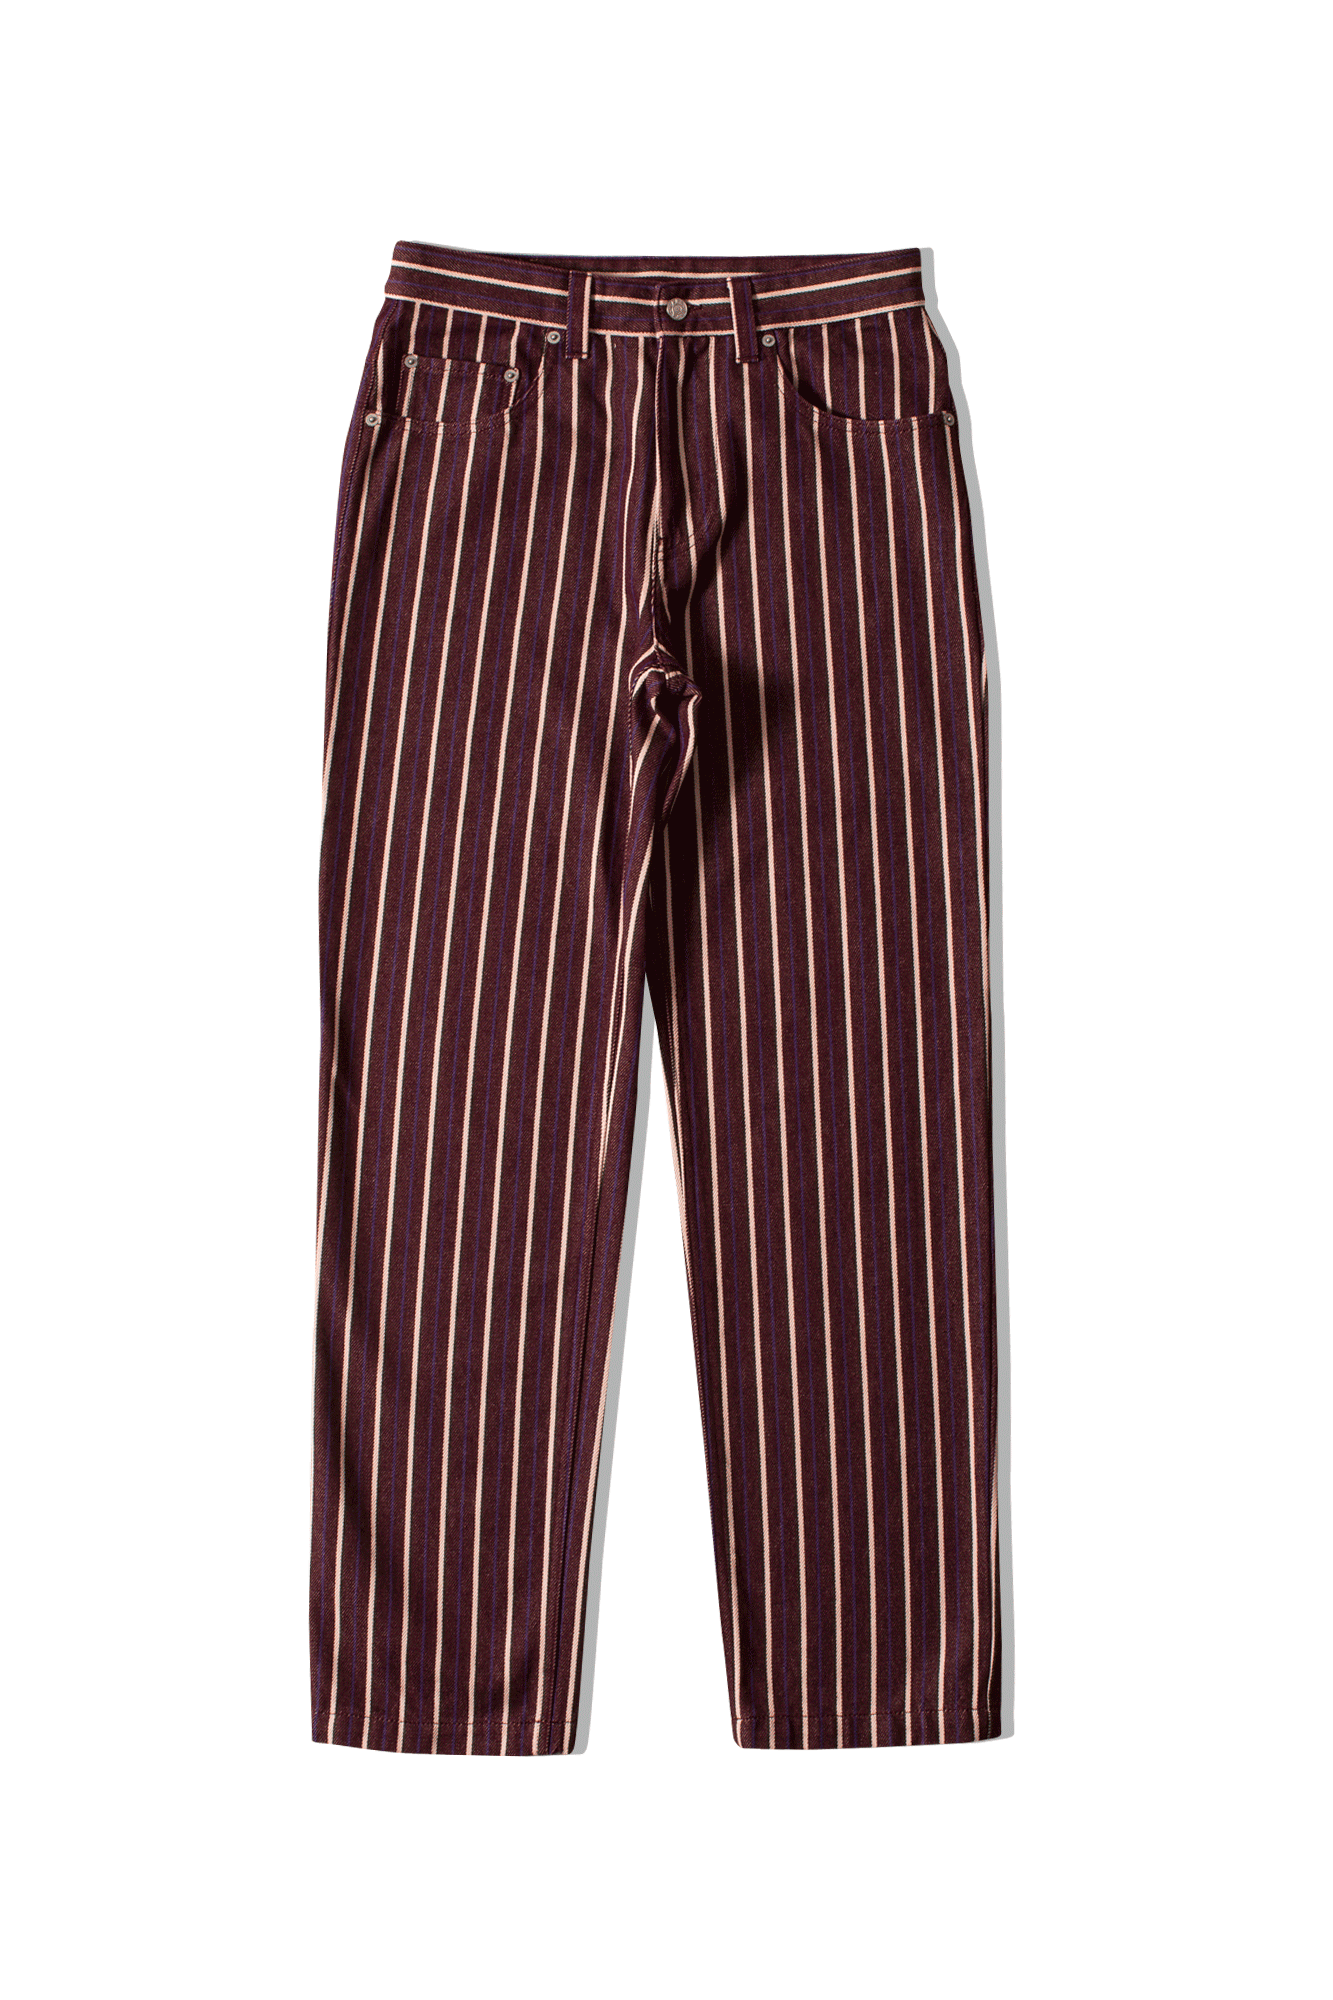 Napa X Martine Rose Jeans L-Risoul Jean Rosso N0YIGAS25#000#RED#S - One Block Down